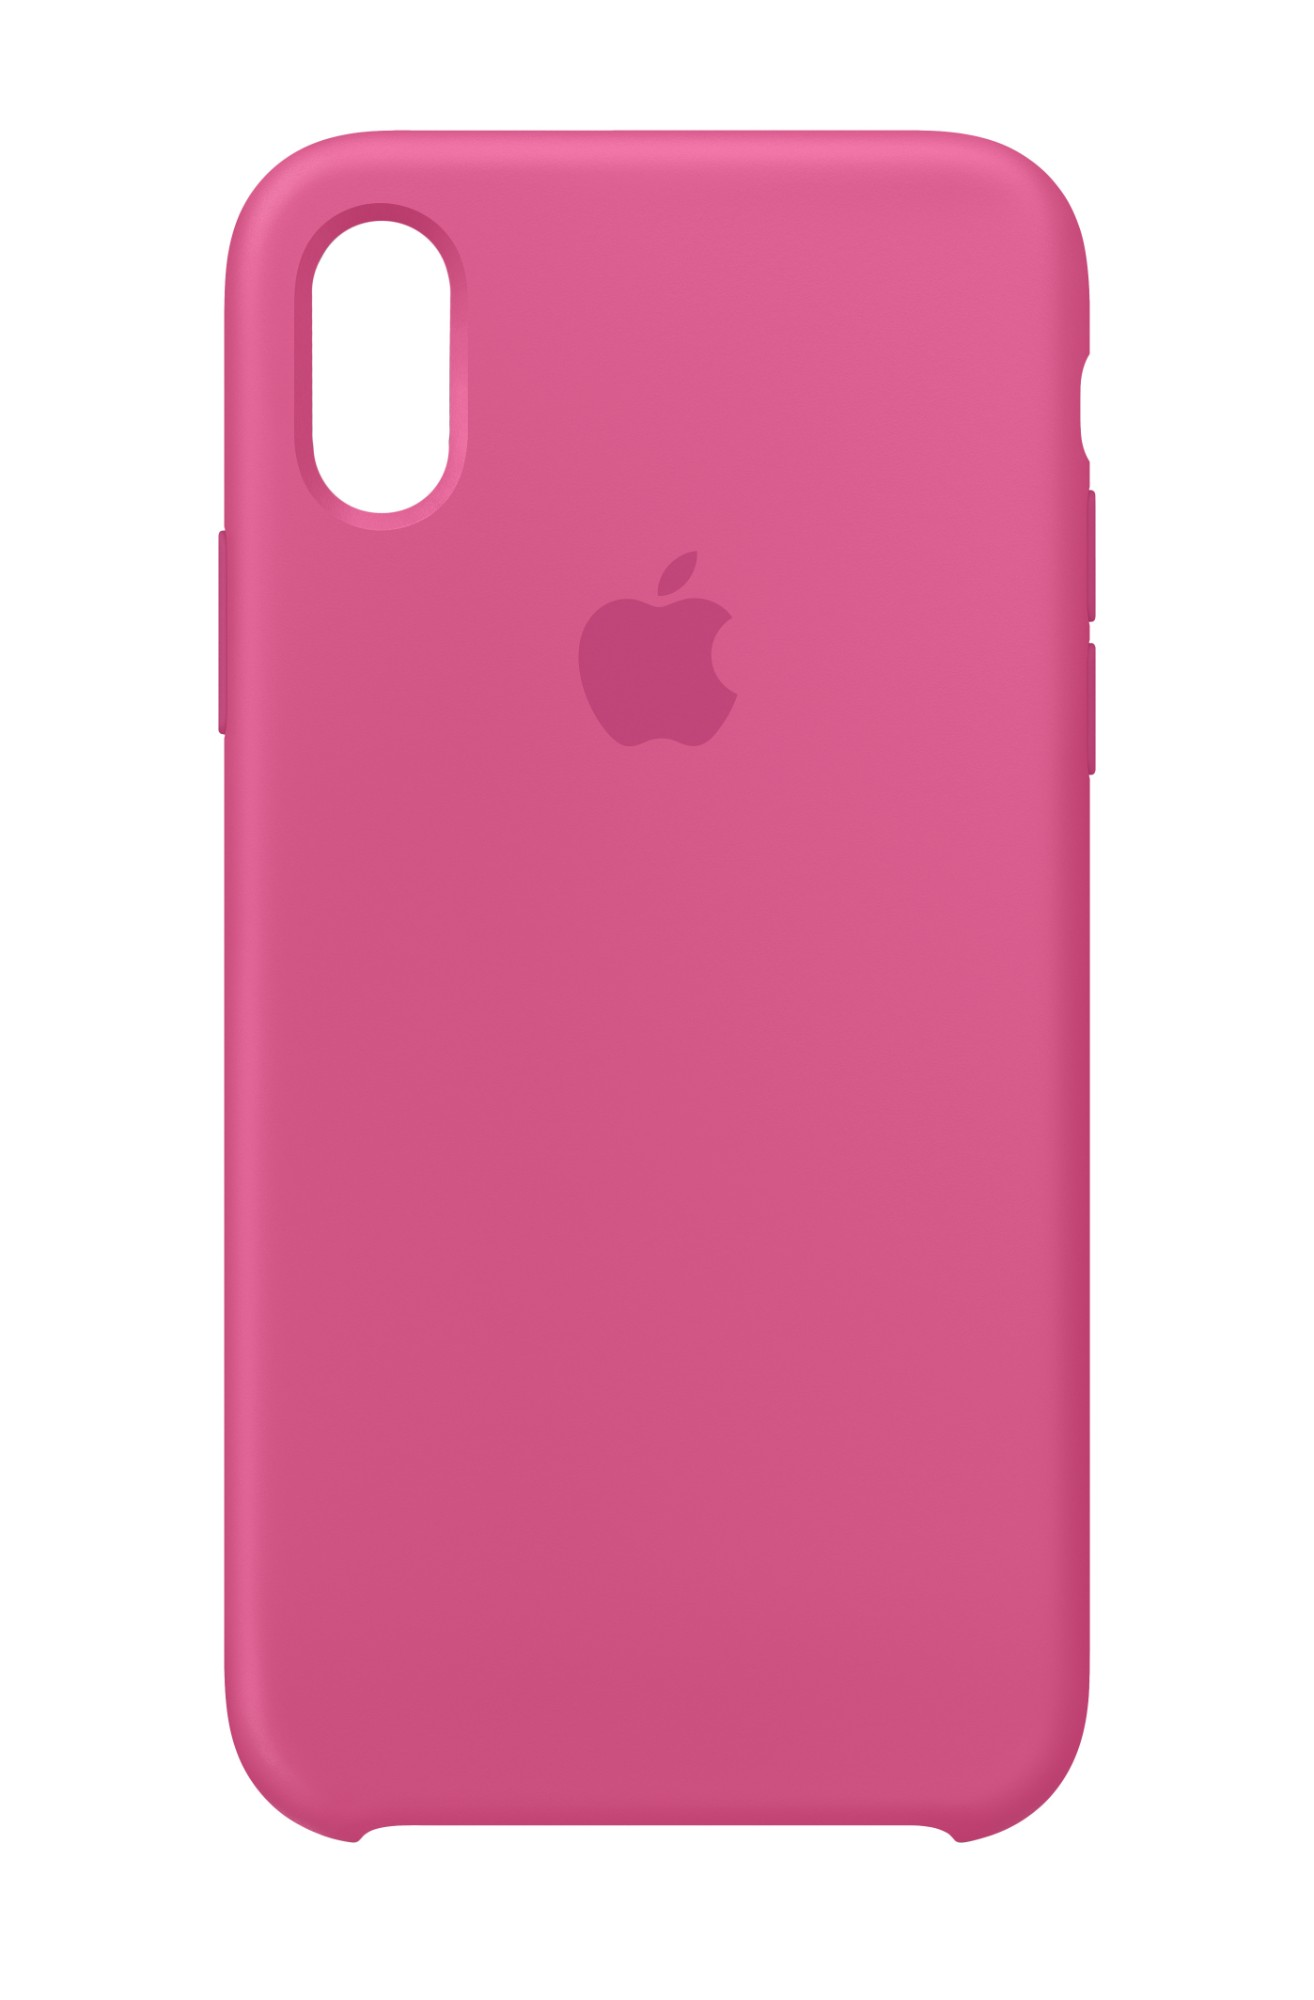 Apple MW9A2ZM/A mobile phone case Cover